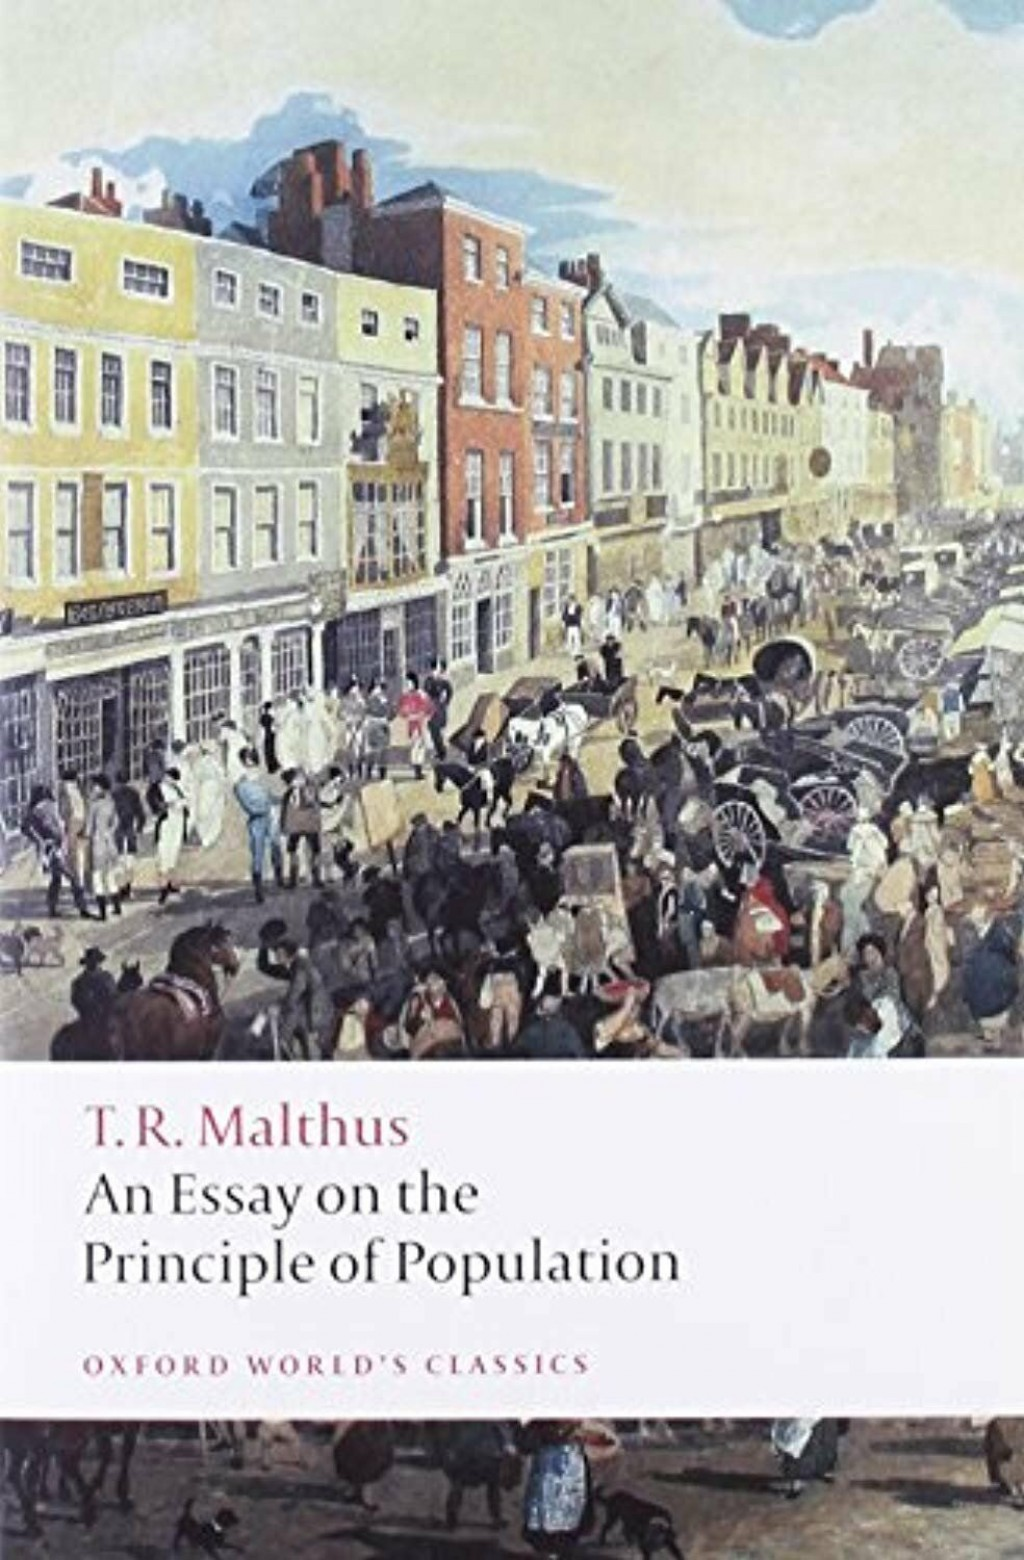 013 S L1600 Thomas Malthus An Essay On The Principle Of Population Marvelous Summary Analysis Argued In His (1798) That Large